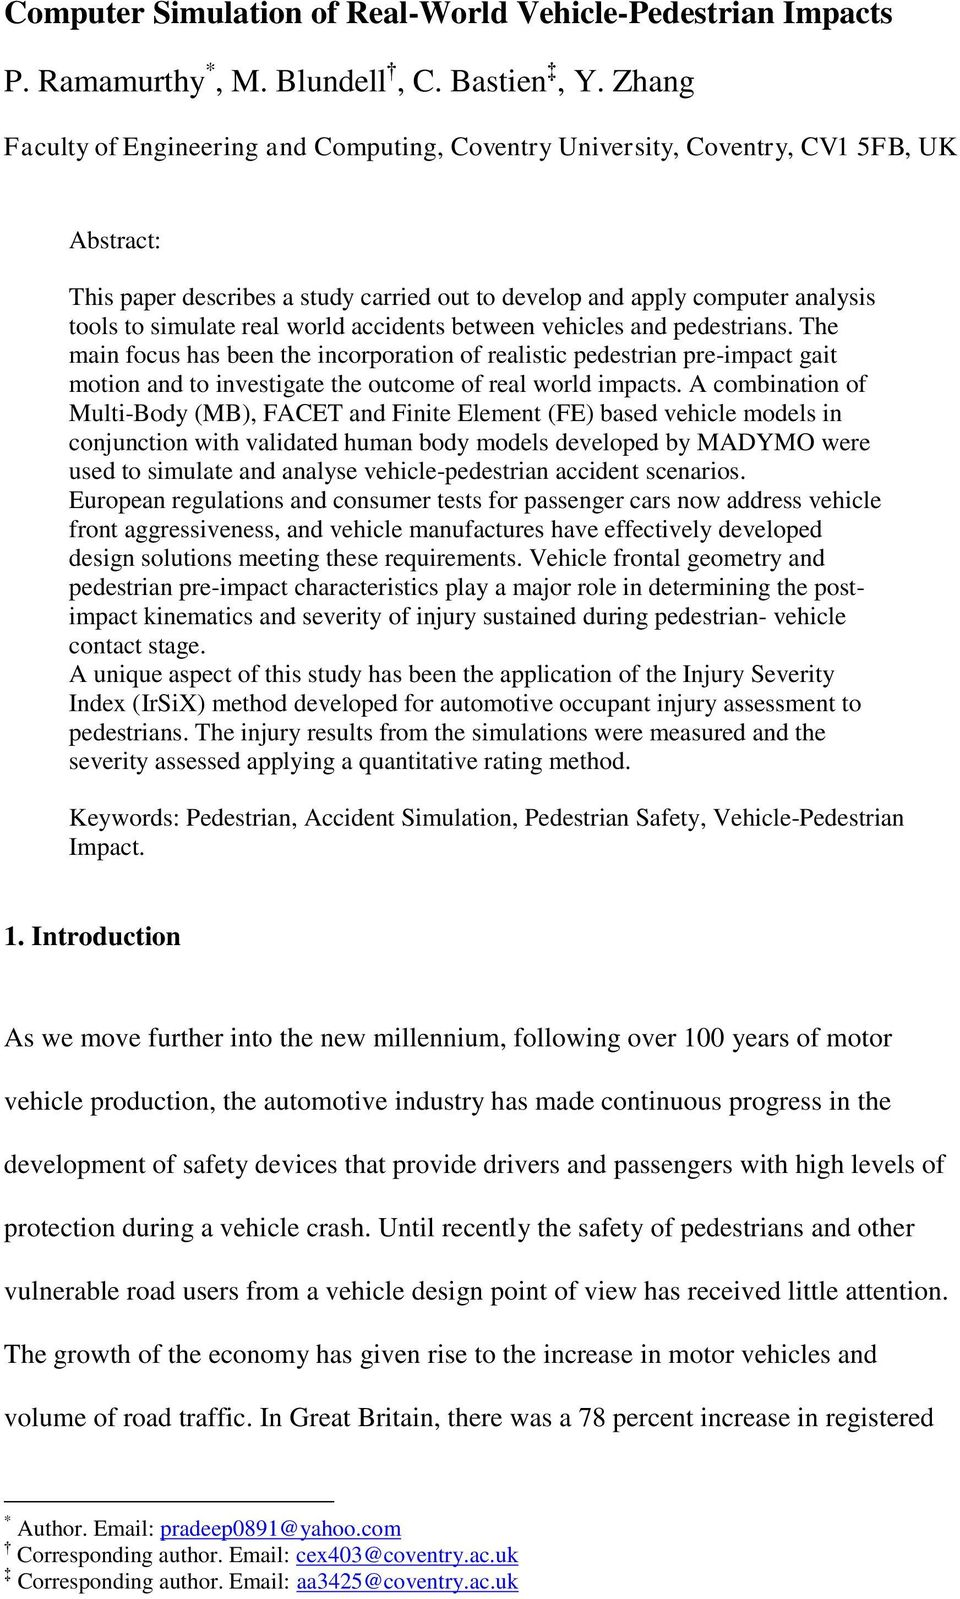 world accidents between vehicles and pedestrians. The main focus has been the incorporation of realistic pedestrian pre-impact gait motion and to investigate the outcome of real world impacts.